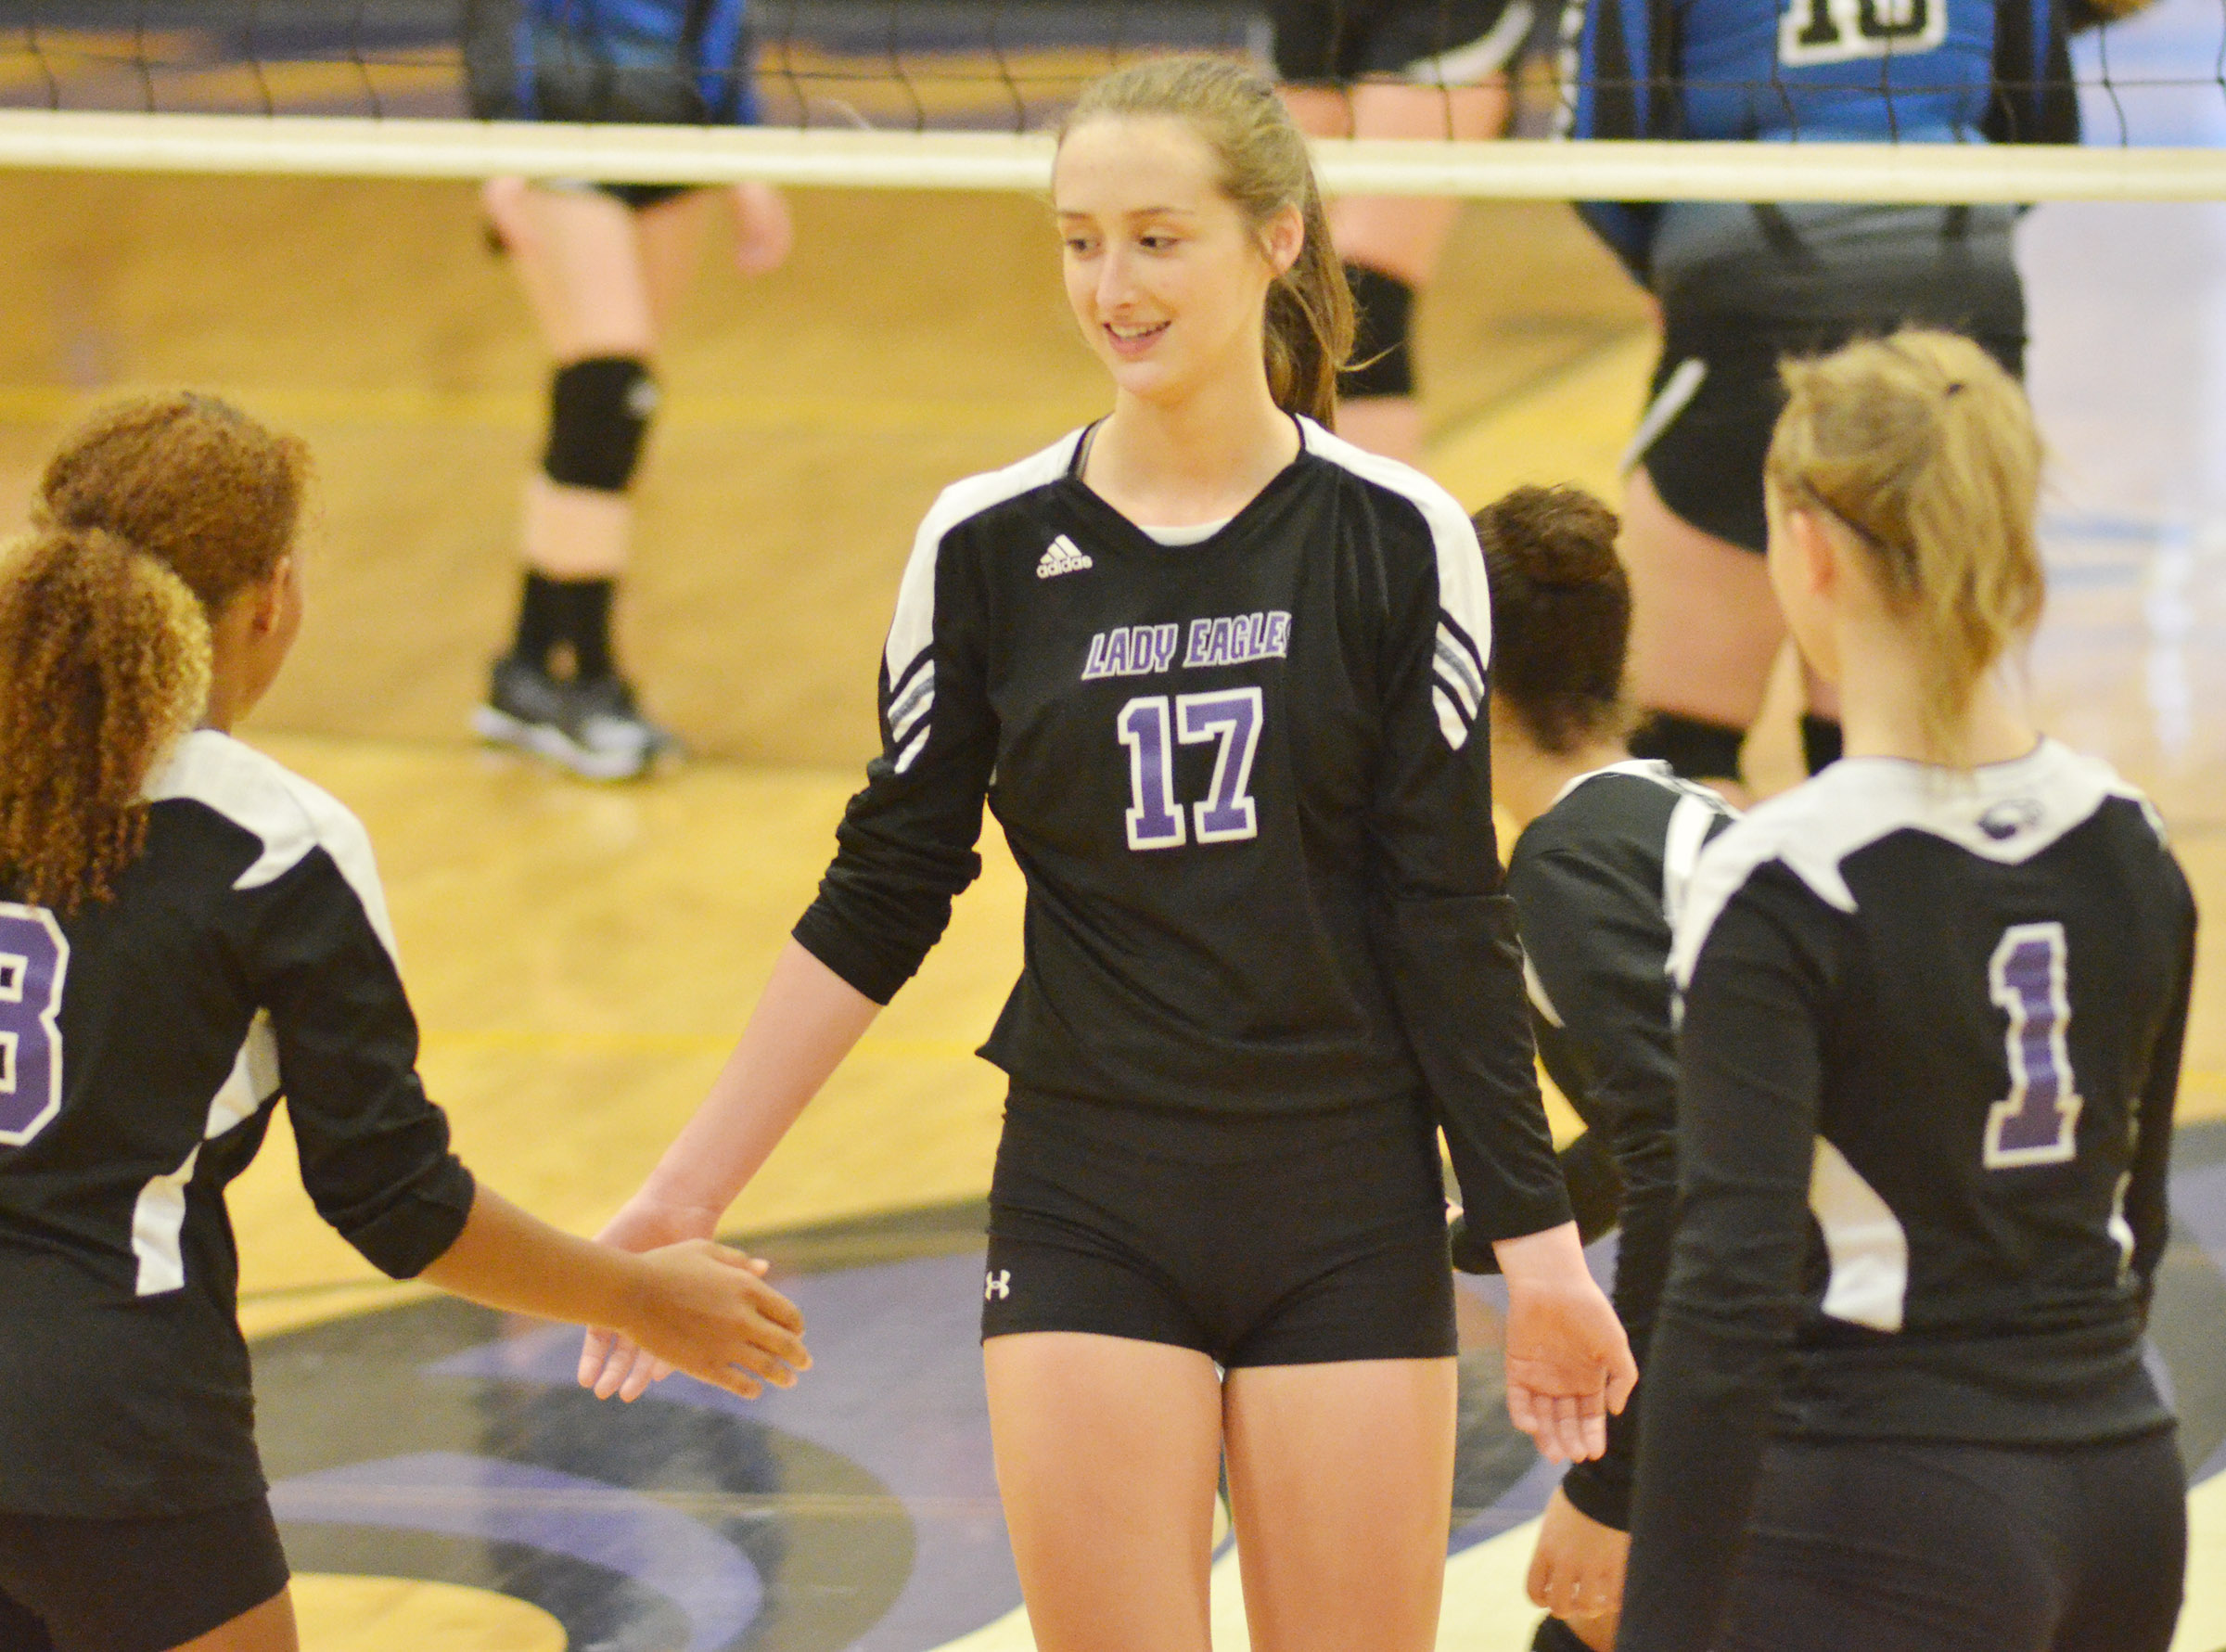 CHS junior Samantha Mason high-fives her teammates.